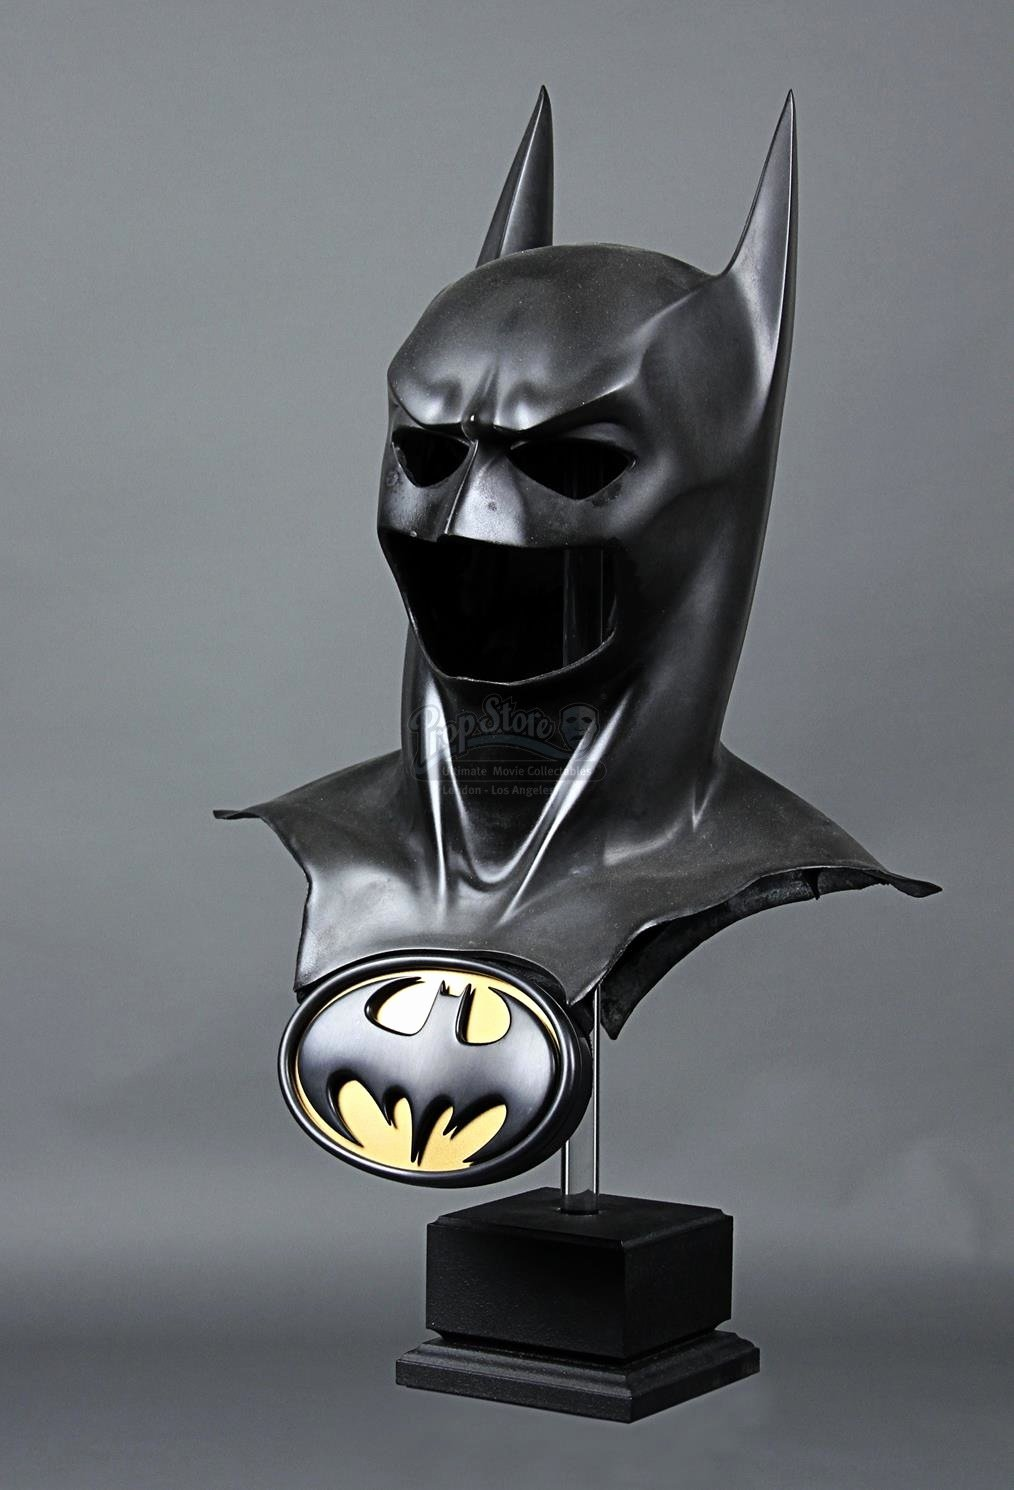 Batman Chest Emblem Beautiful Batman forever 1995 Batman S Val Kilmer Batsuit Cowl